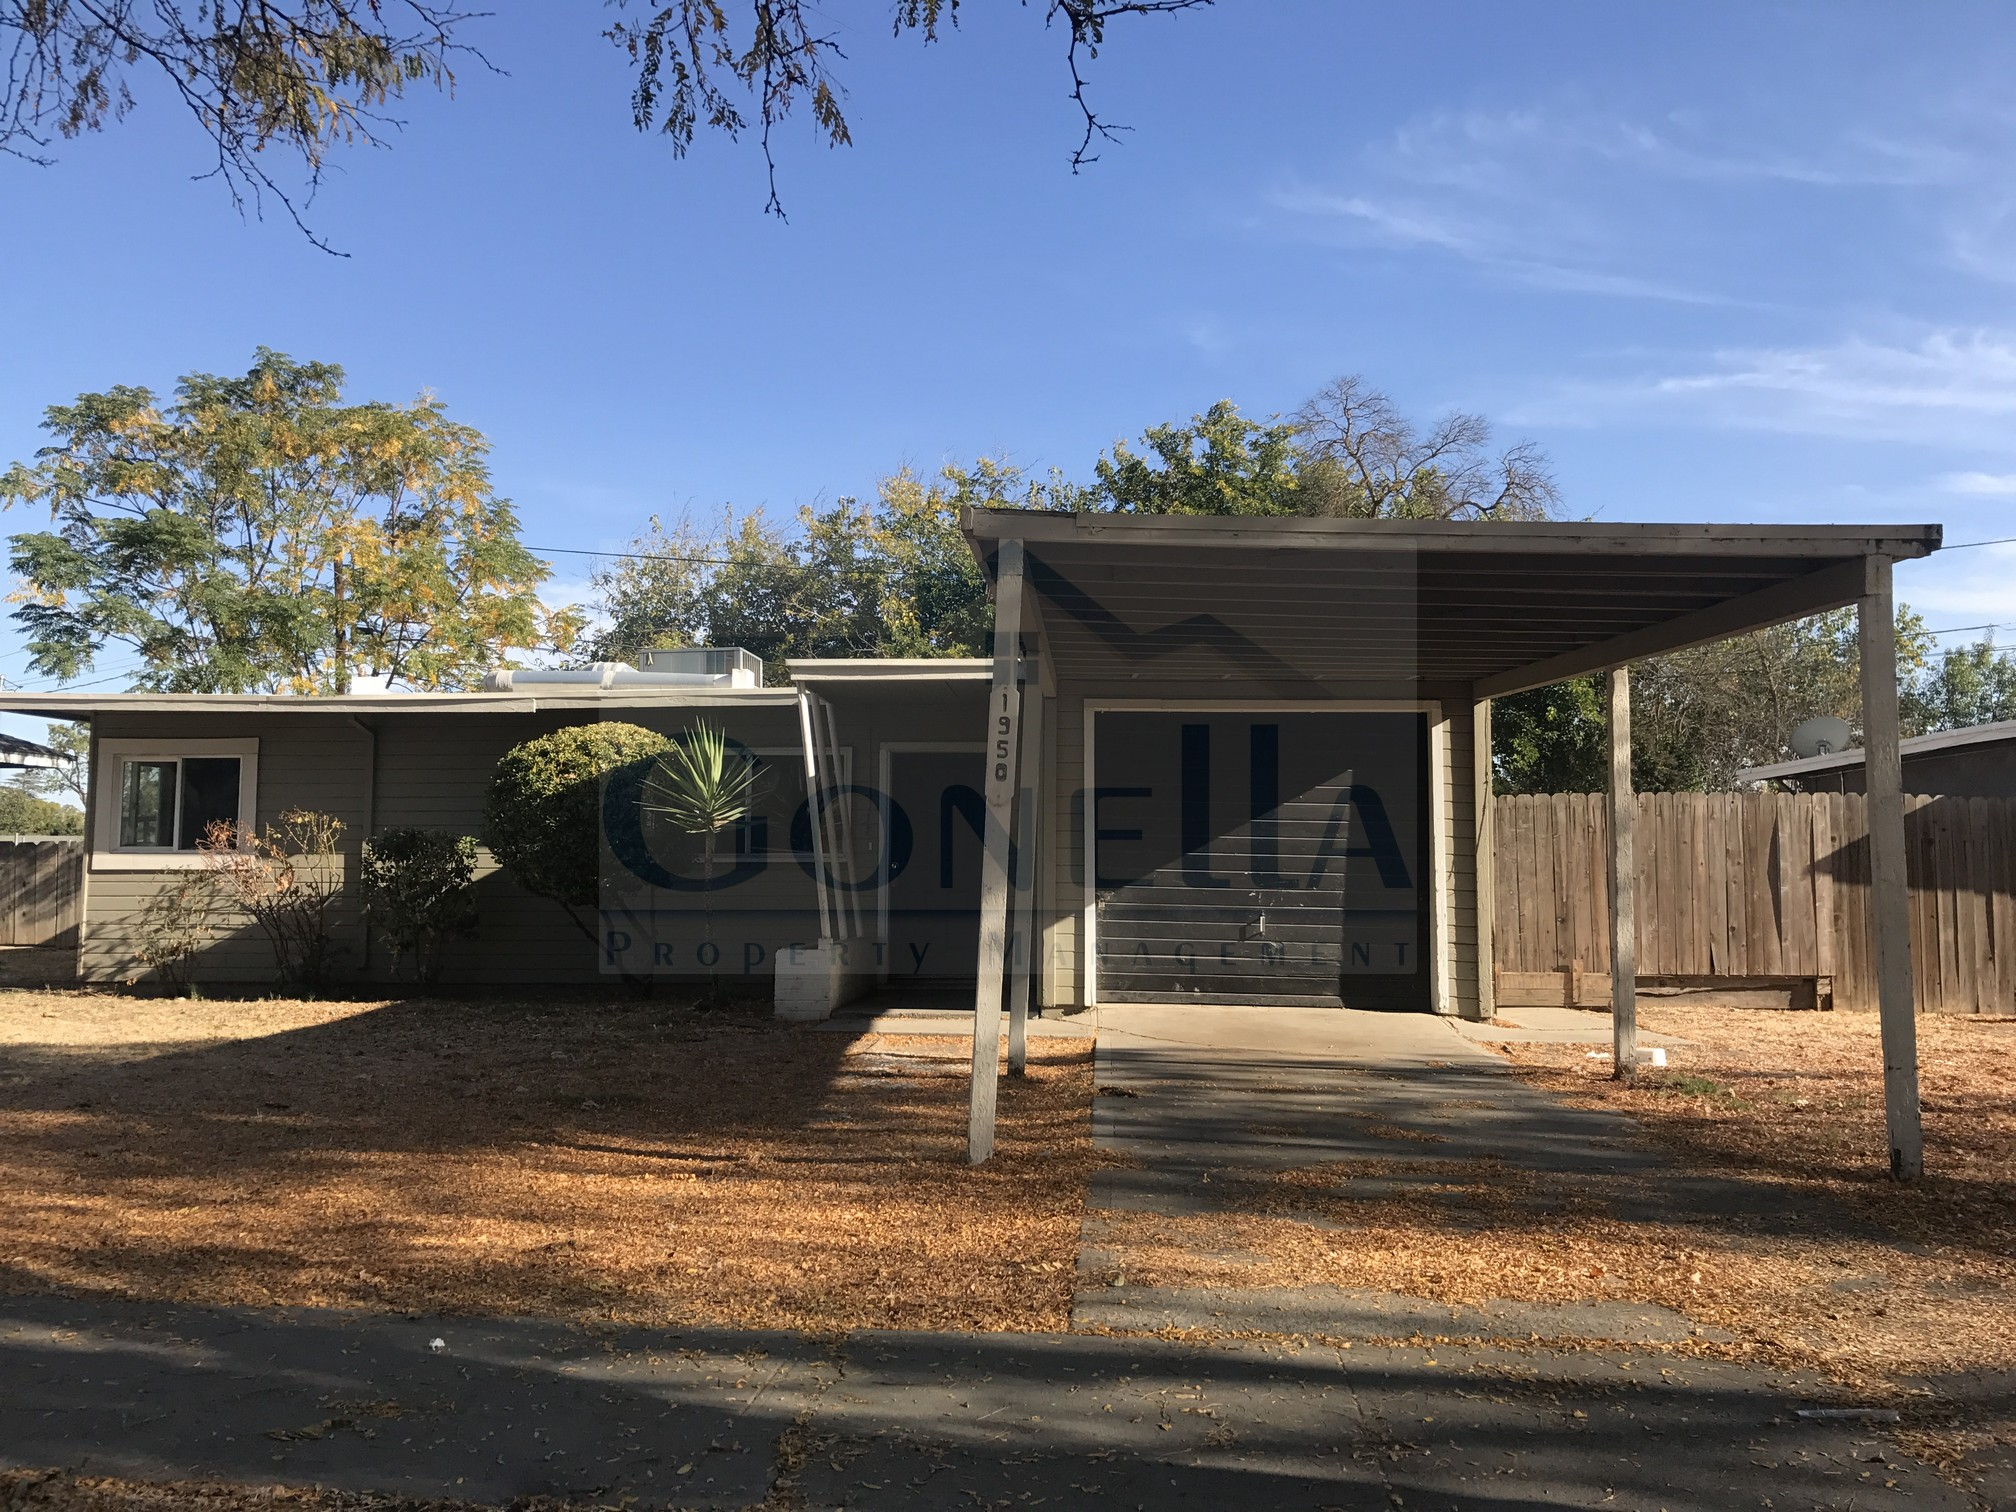 Rent $995 Deposit $995 1950 Glen (W Olive Ave, Right on G St, Left on E 21st, Right on Glen) 907 Sq ft, this  is a 2 bedroom house with a BONUS room that can be used as a bedroom! living room with fireplace, kitchen, landscaped front and back,, laundry hook ups, Car port, landscaped front and back. No pets!   To obtain a credit application, click on APPLICATION Tab Above.  Credit Check required = $20 processing fee per applicant (Payable by cashiers' check or money order) All tenants are required to obtain renters insurance of at least 50K prior to signing lease. FOR MORE INFORMATION   CALL GONELLA PROPERTY MANAGEMENT AT (209)383-6277!  Gonella Realty Inc. DBA Gonella Property Management CalBRE#01103054